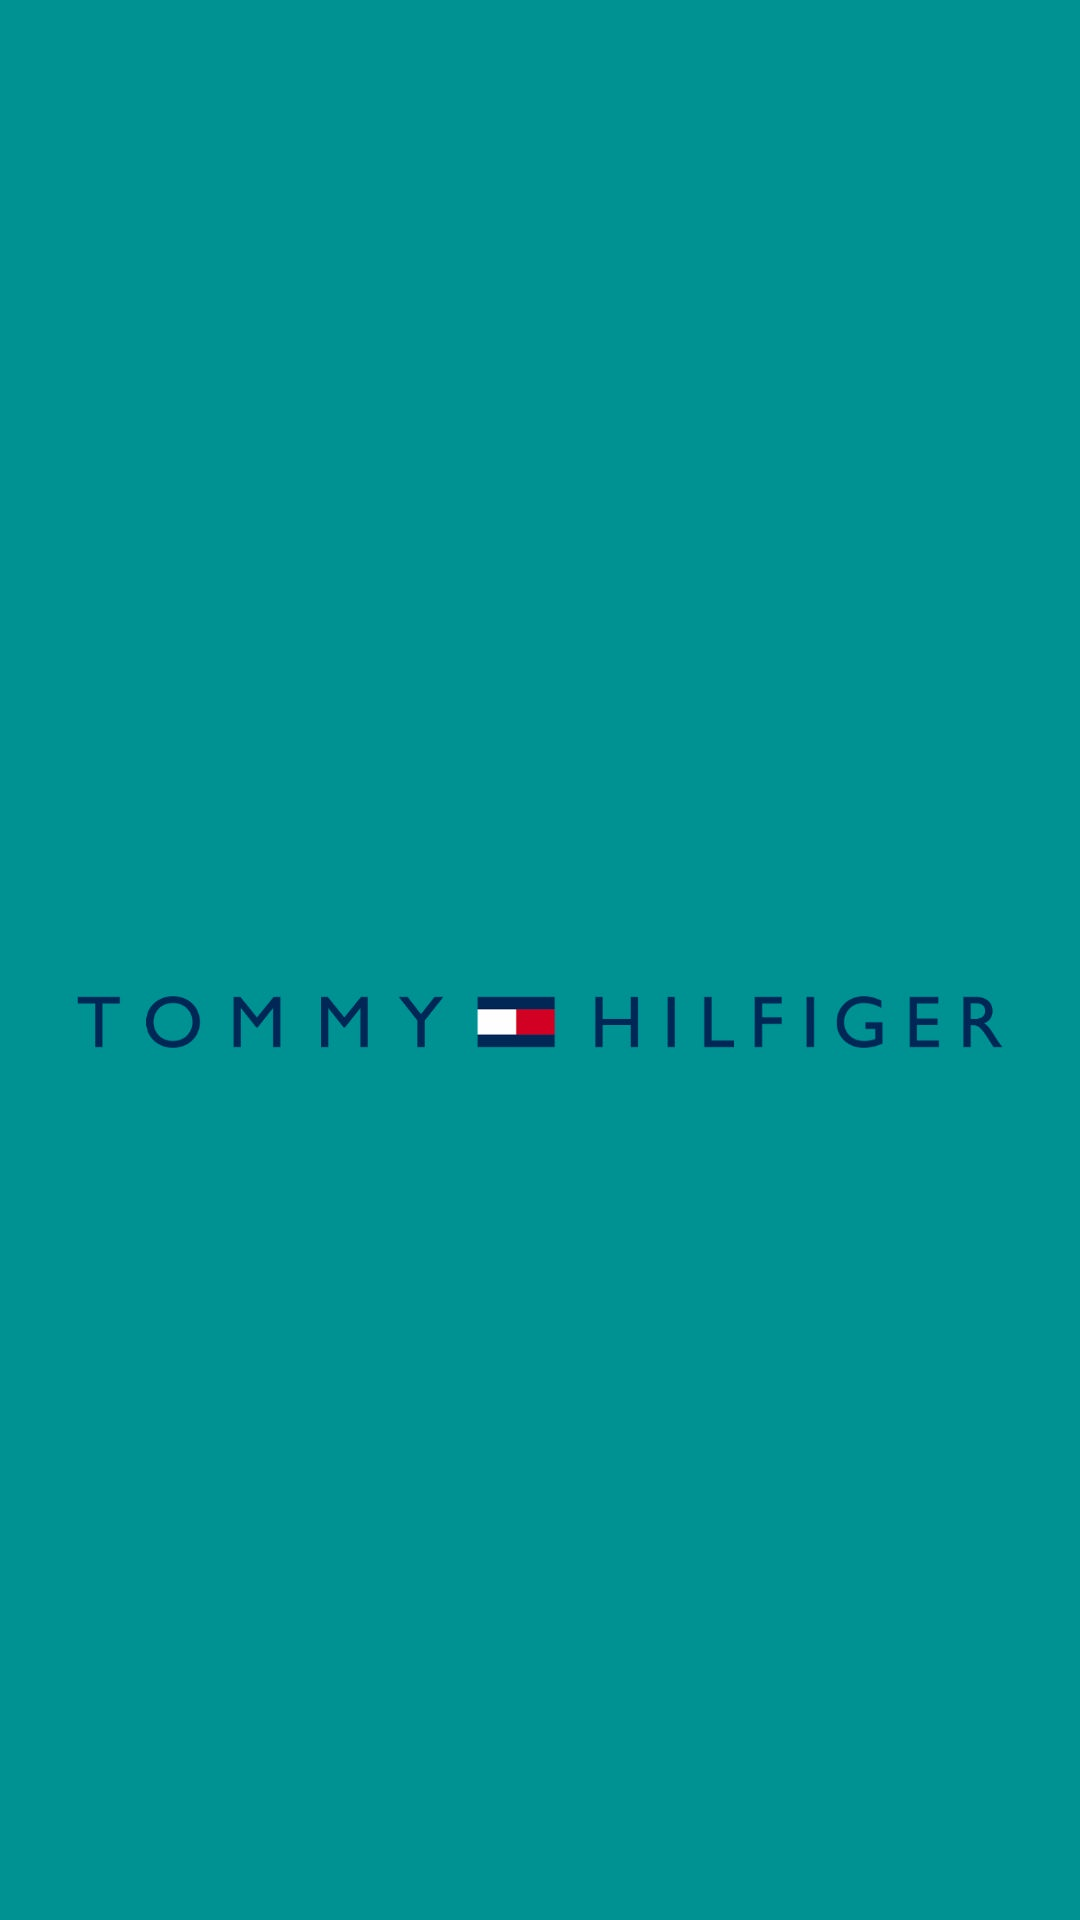 tommyhilfiger07 - TOMMY HILFIGER/トミー・ヒルフィガーの高画質スマホ壁紙20枚 [iPhone&Androidに対応]